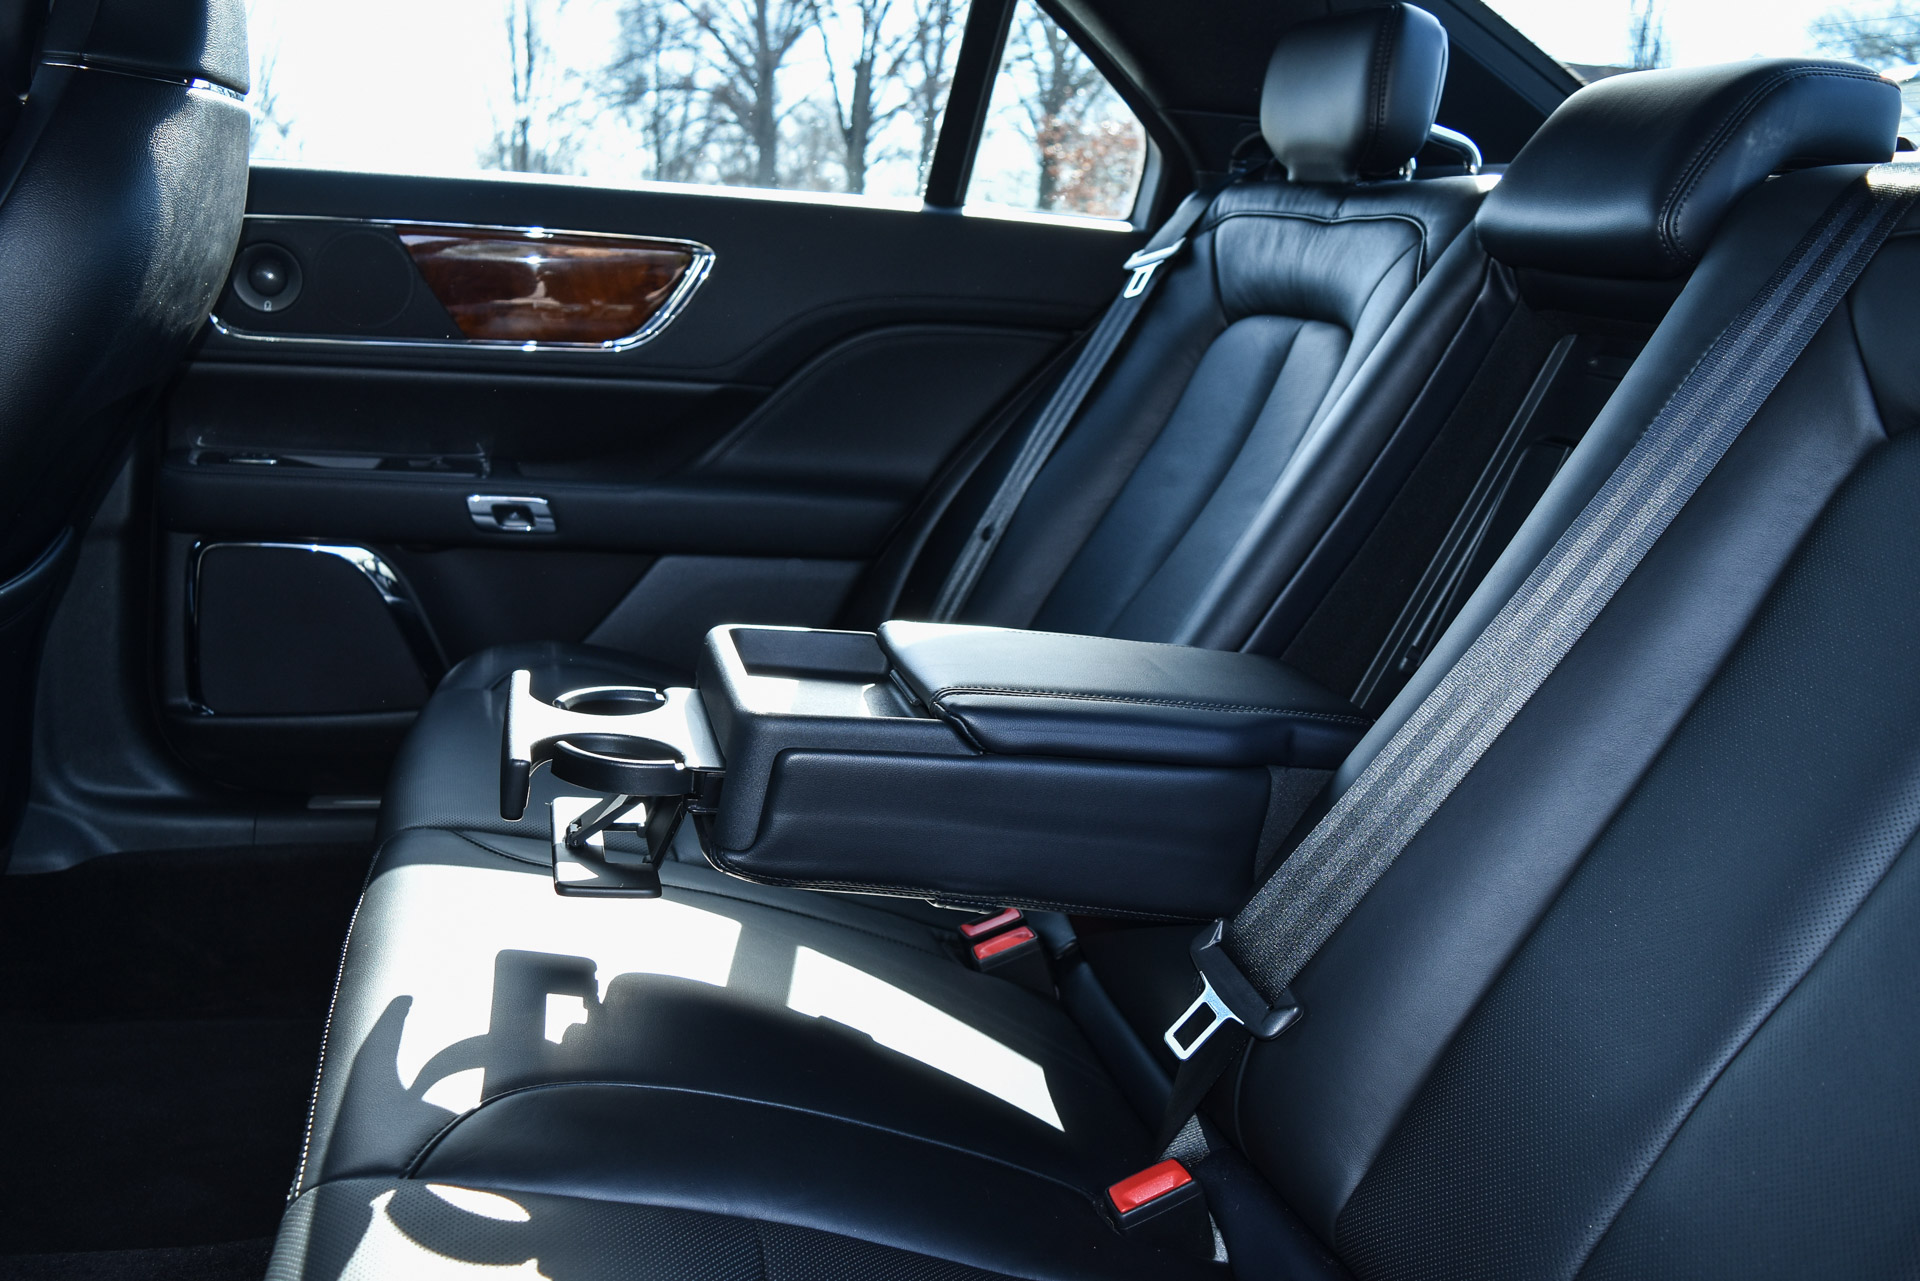 2017 lincoln continental review 95 octane - 2017 lincoln continental interior ...